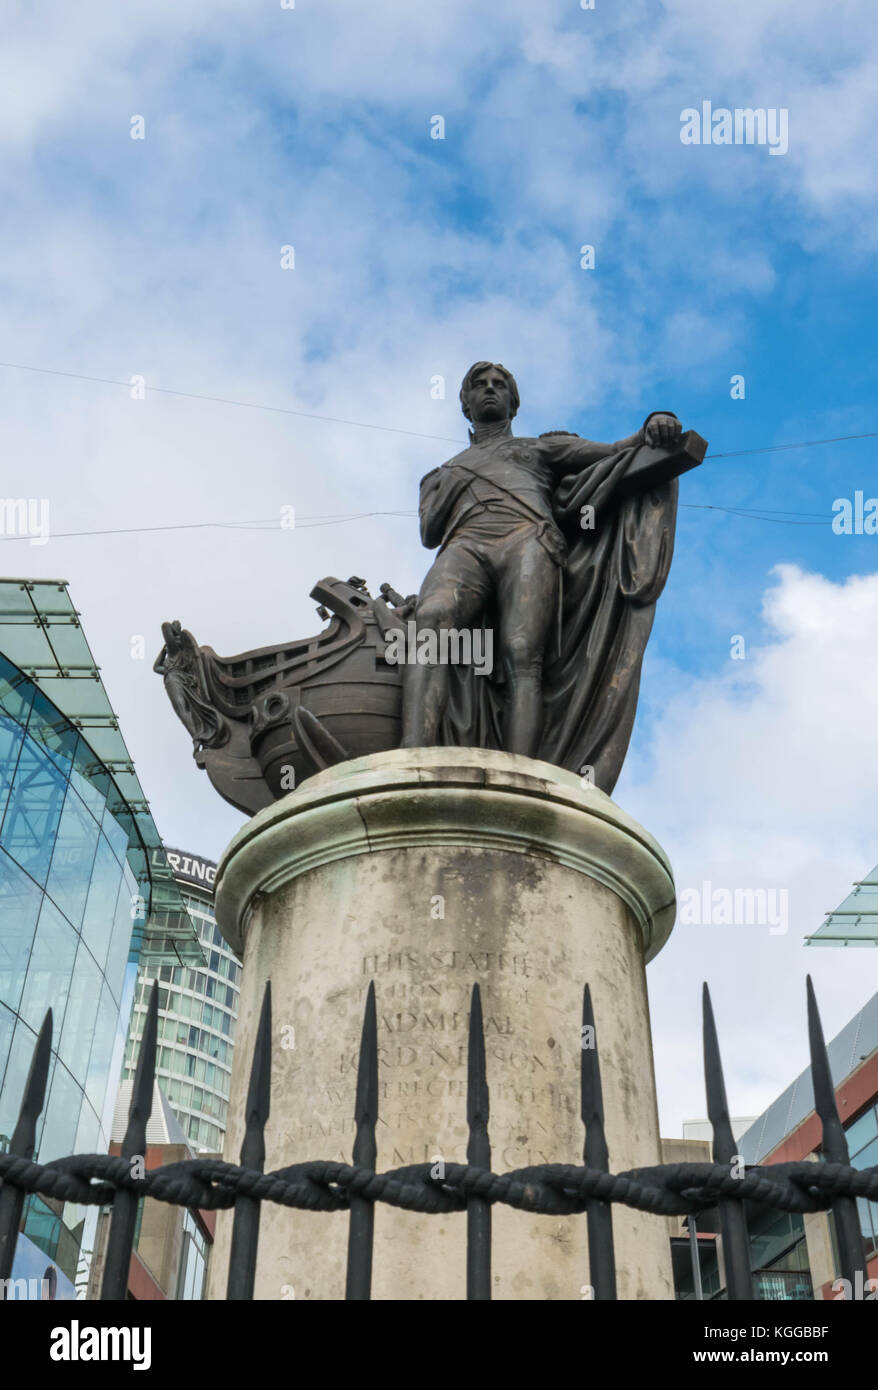 Birminghamm, UK - October 3rd, 2017 : Statue of Lord Horatio Nelson in the Bull Ring shopping centre - Stock Image